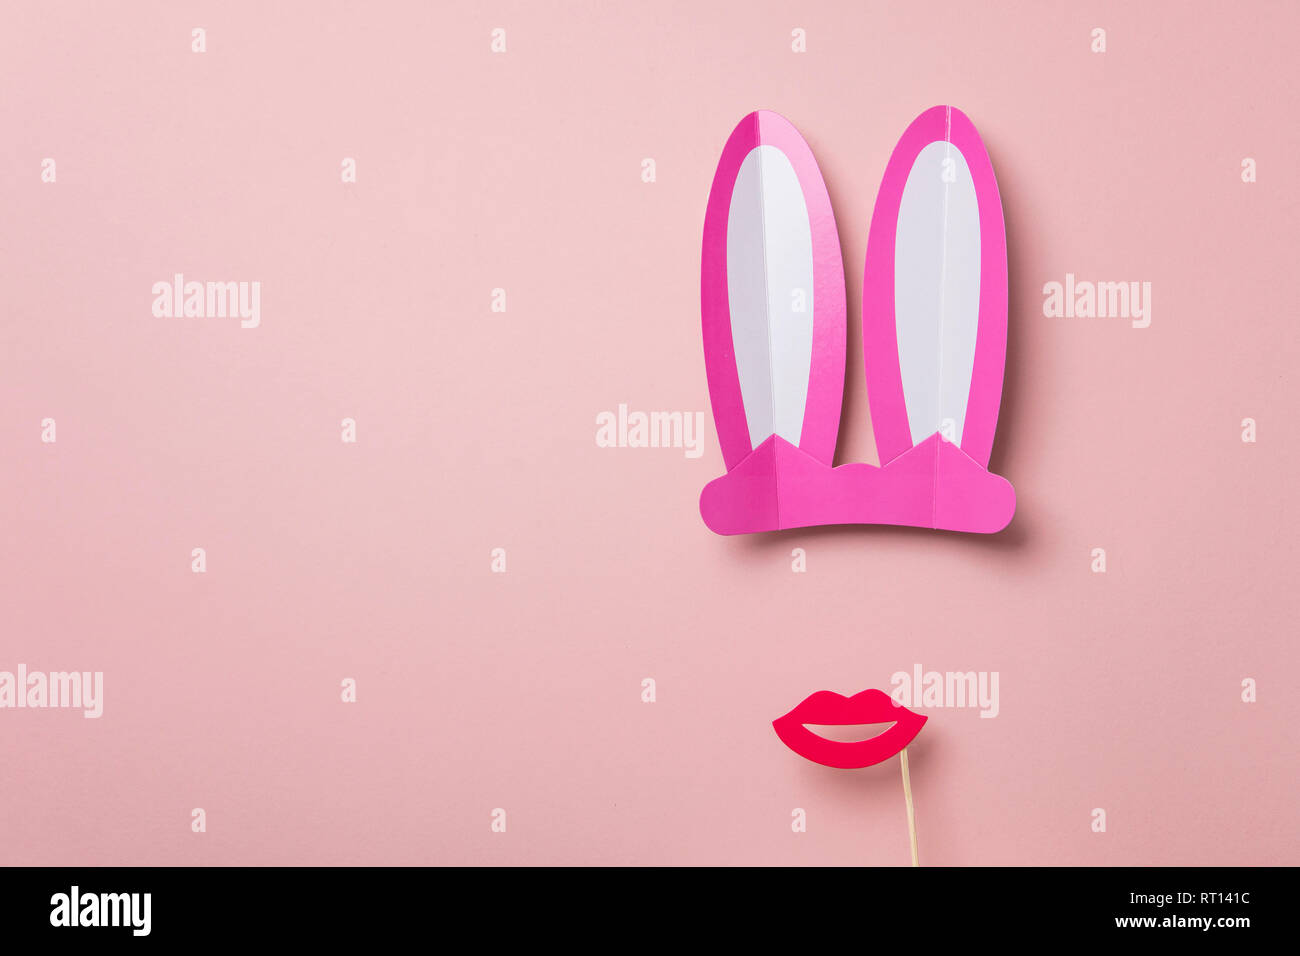 Pink Easter bunny ears and red lips. Minimal lay flat design - Stock Image